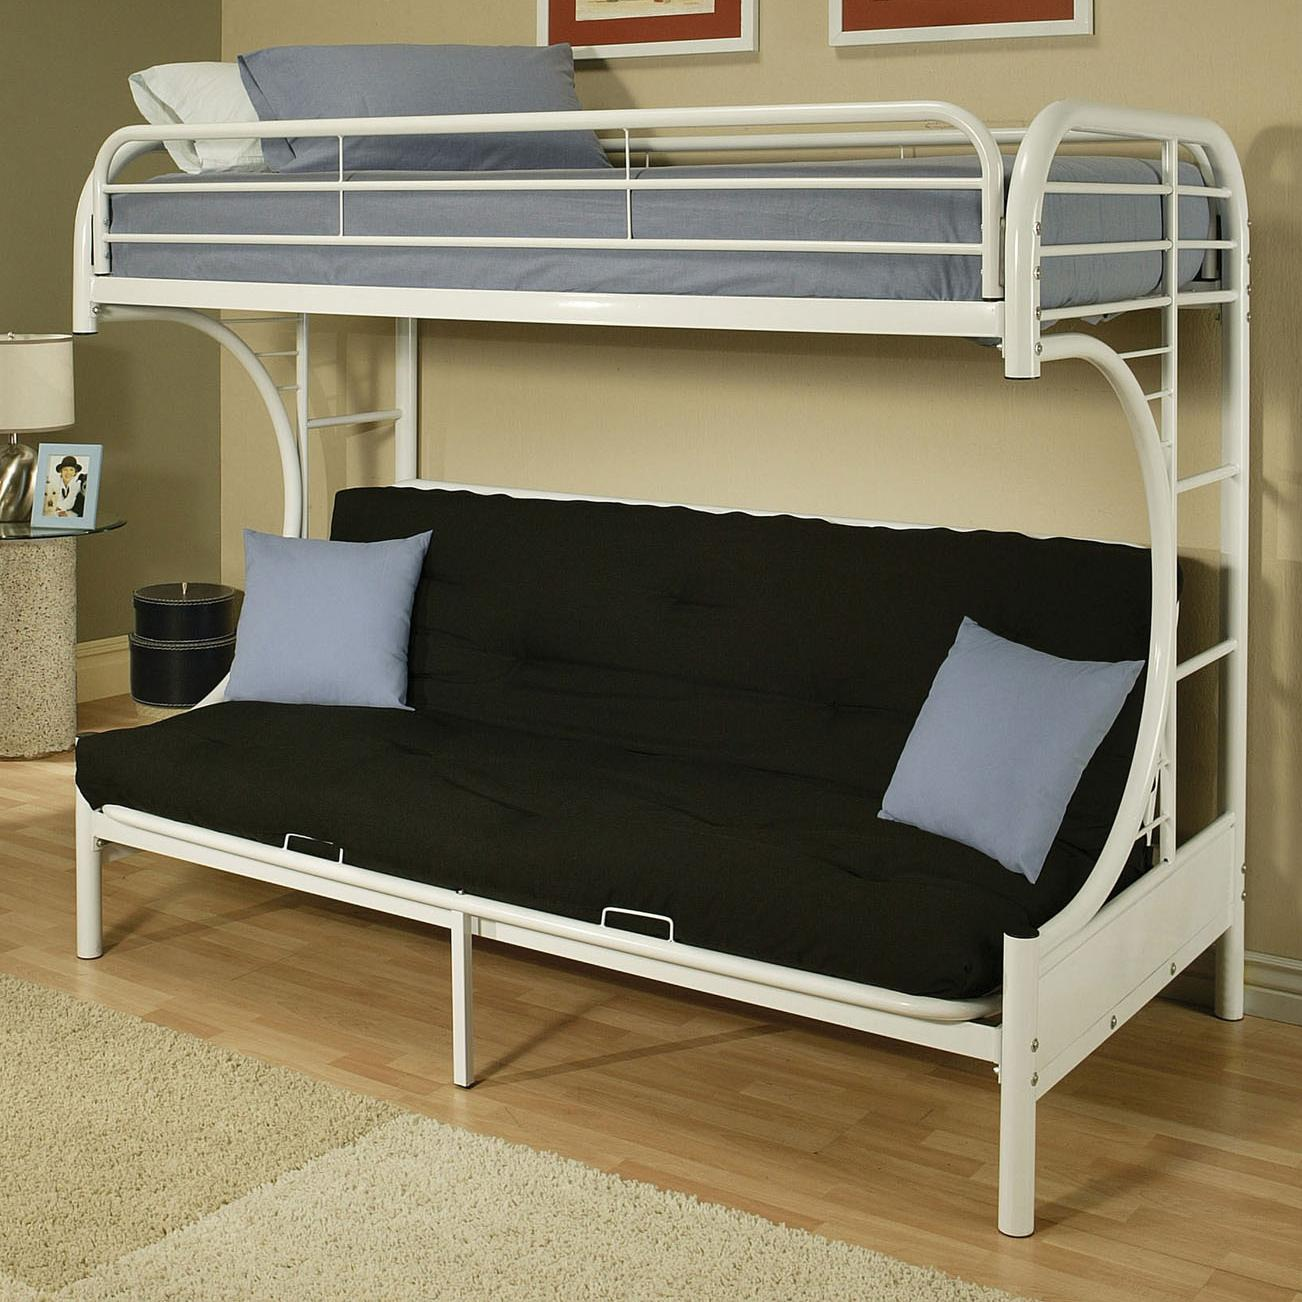 Acme Furniture Eclipse Twin/Full Bunk Bed - Item Number: 02091NV WHITE